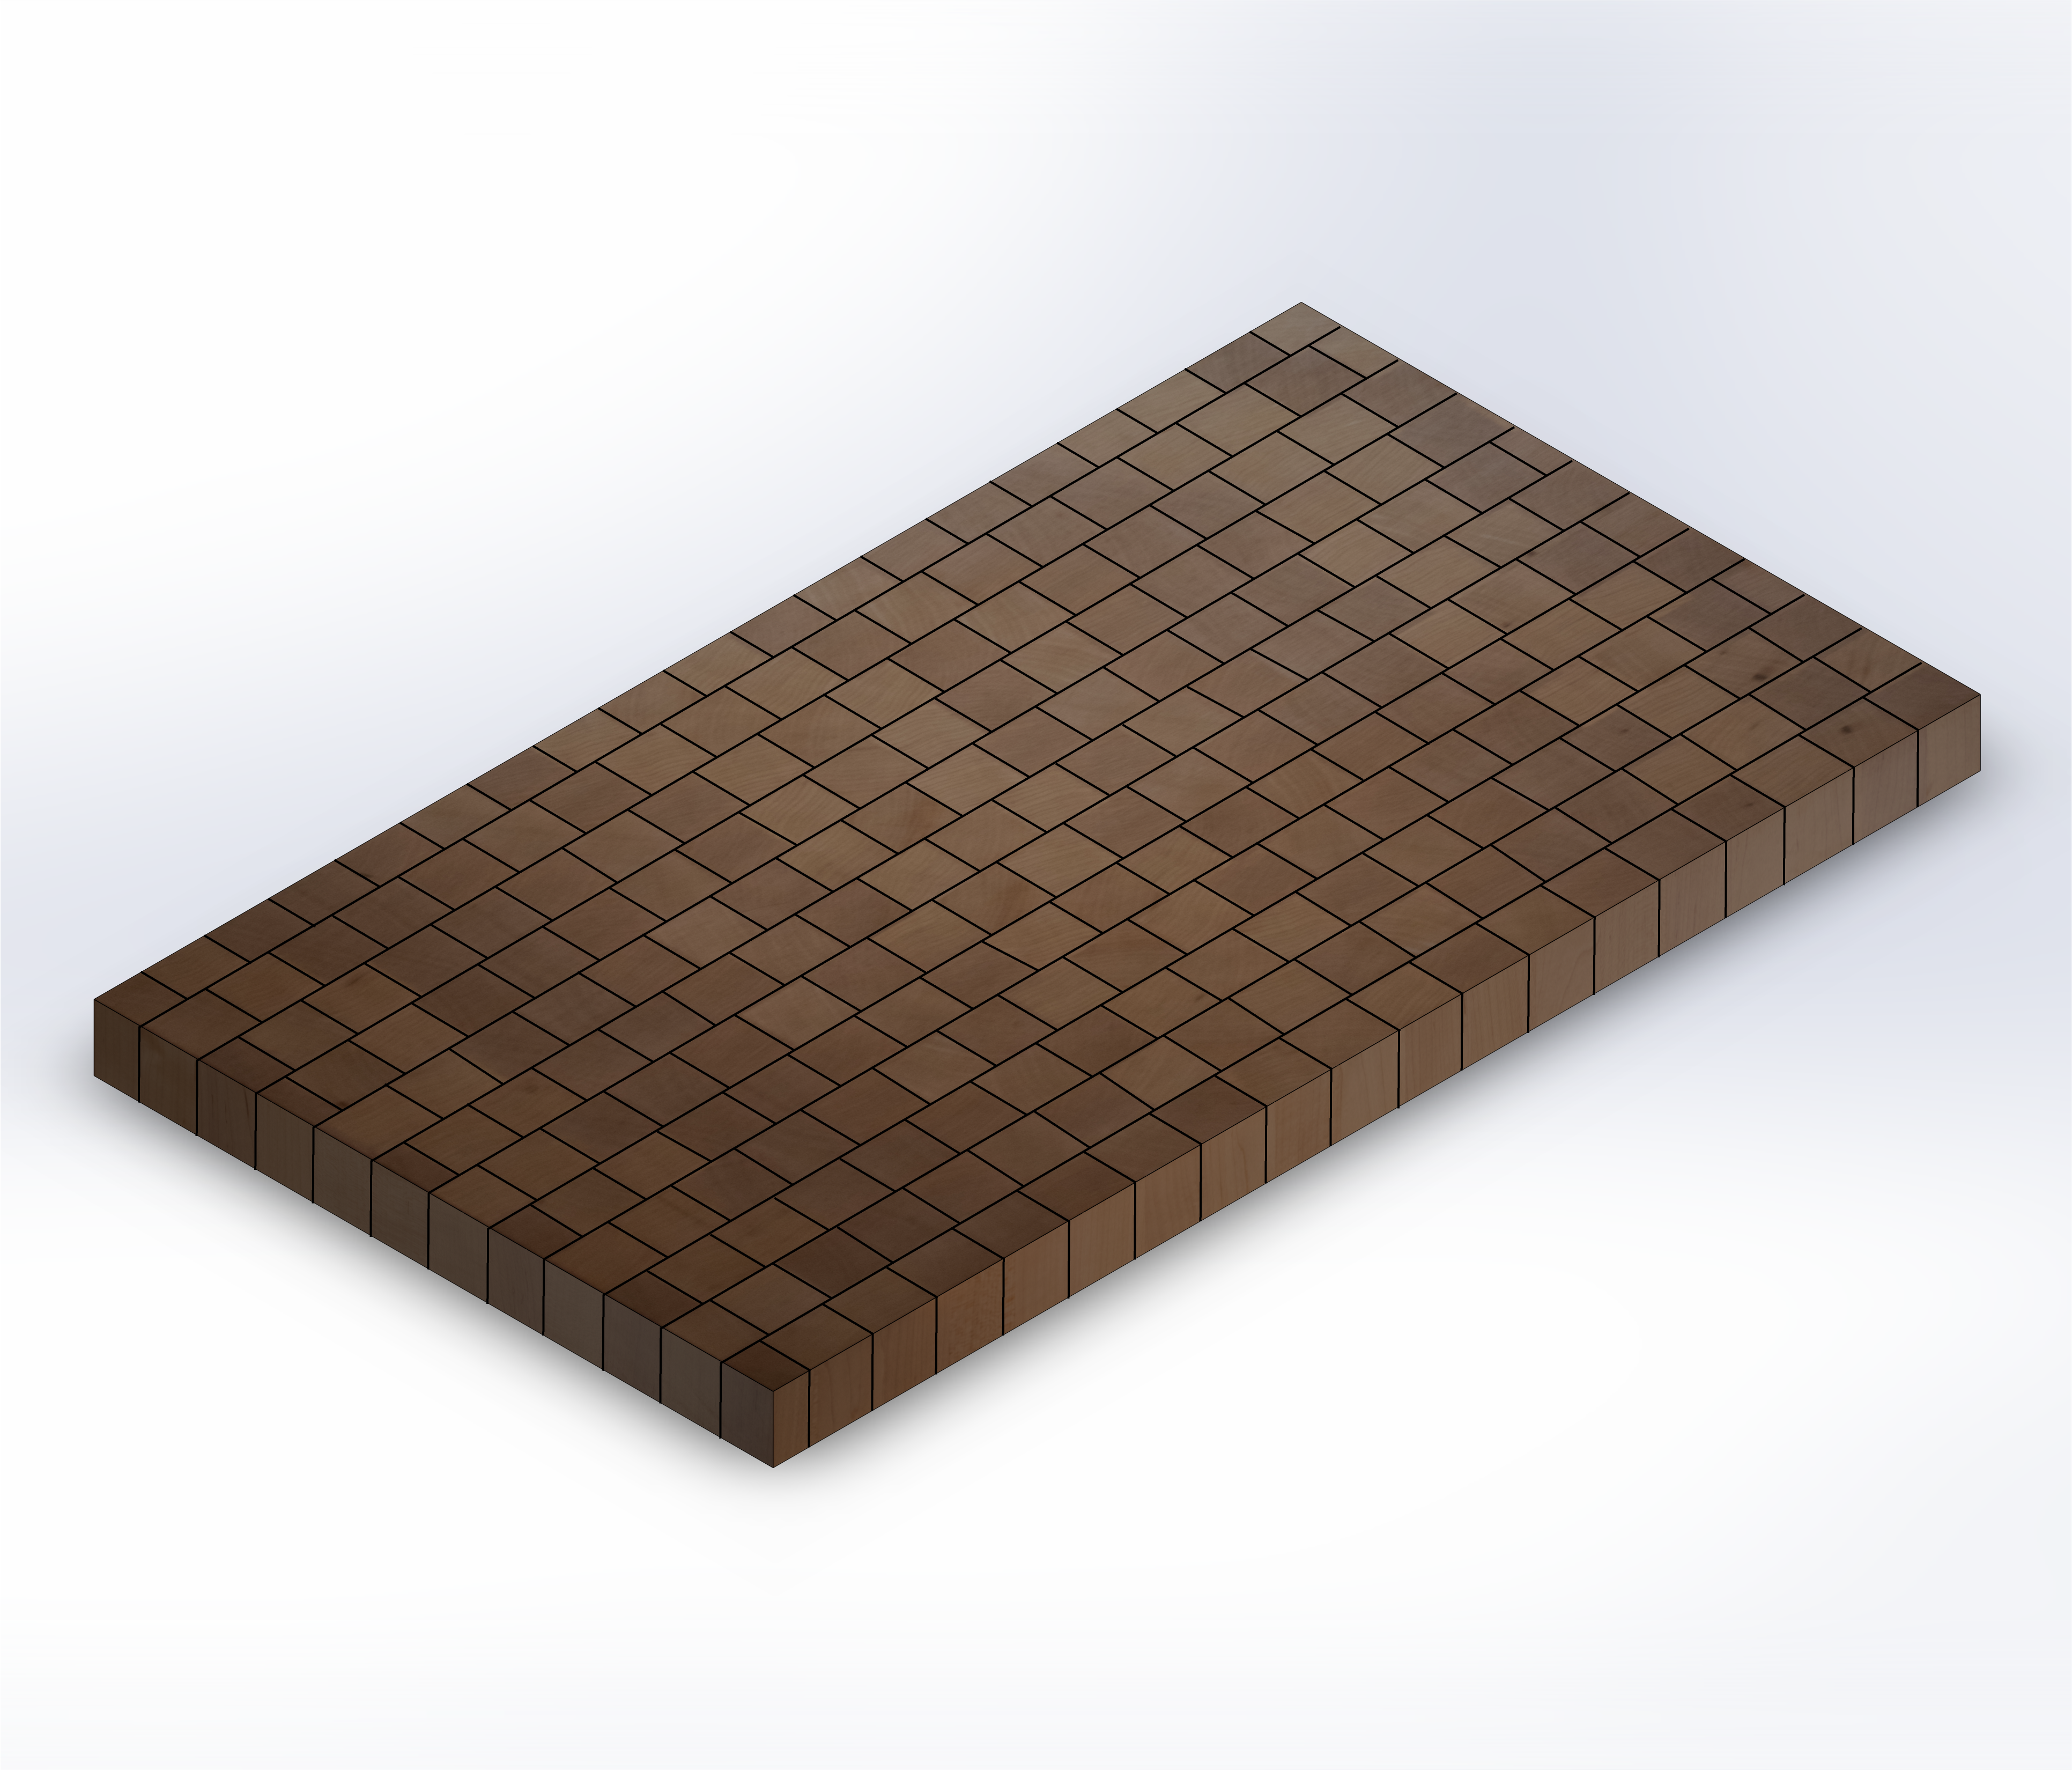 end-grain-model-lined-up.png